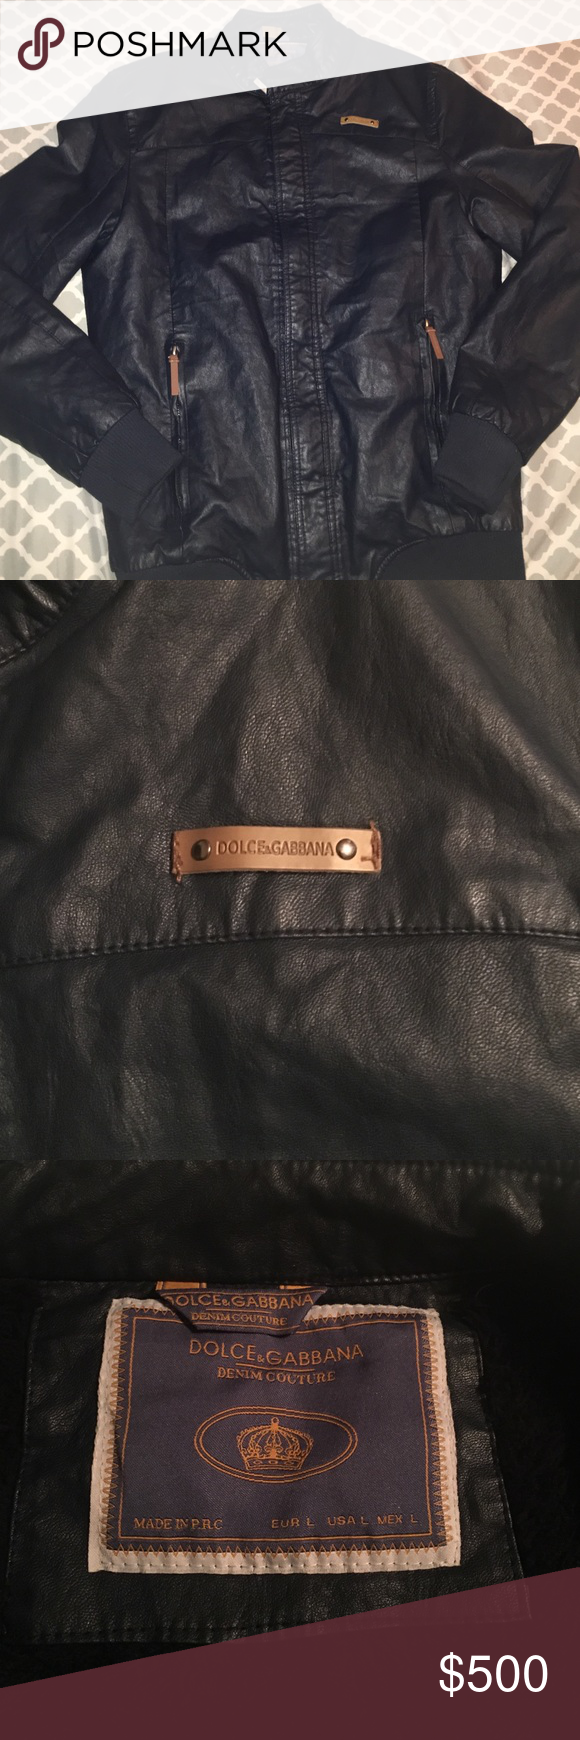 Beautiful D&G leather jacket! This jacket is in great